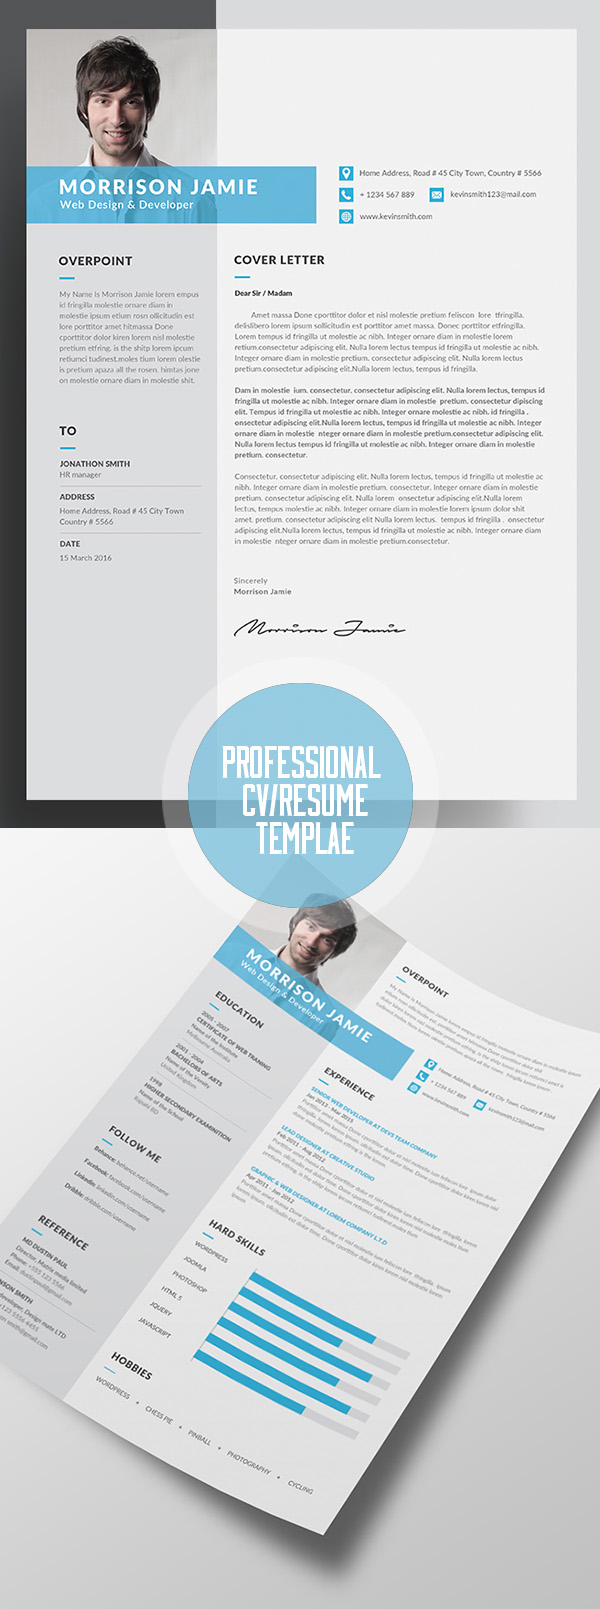 Professional Cv  Resume Templates And Cover Letter  Idevie